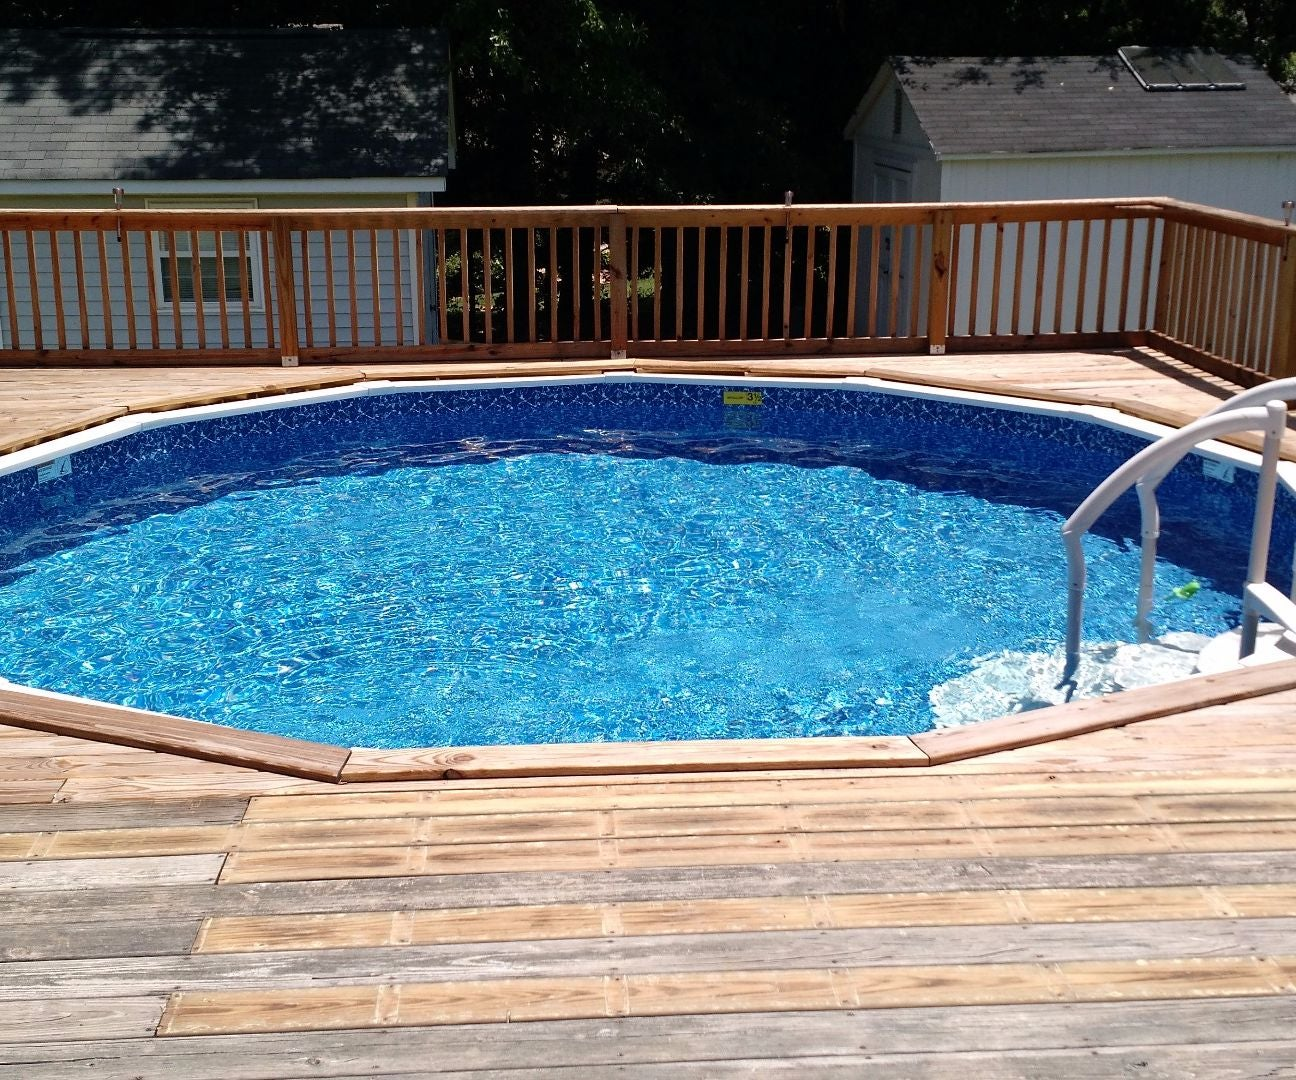 DIY Solar Pool Heater: 7 Steps (with Pictures)